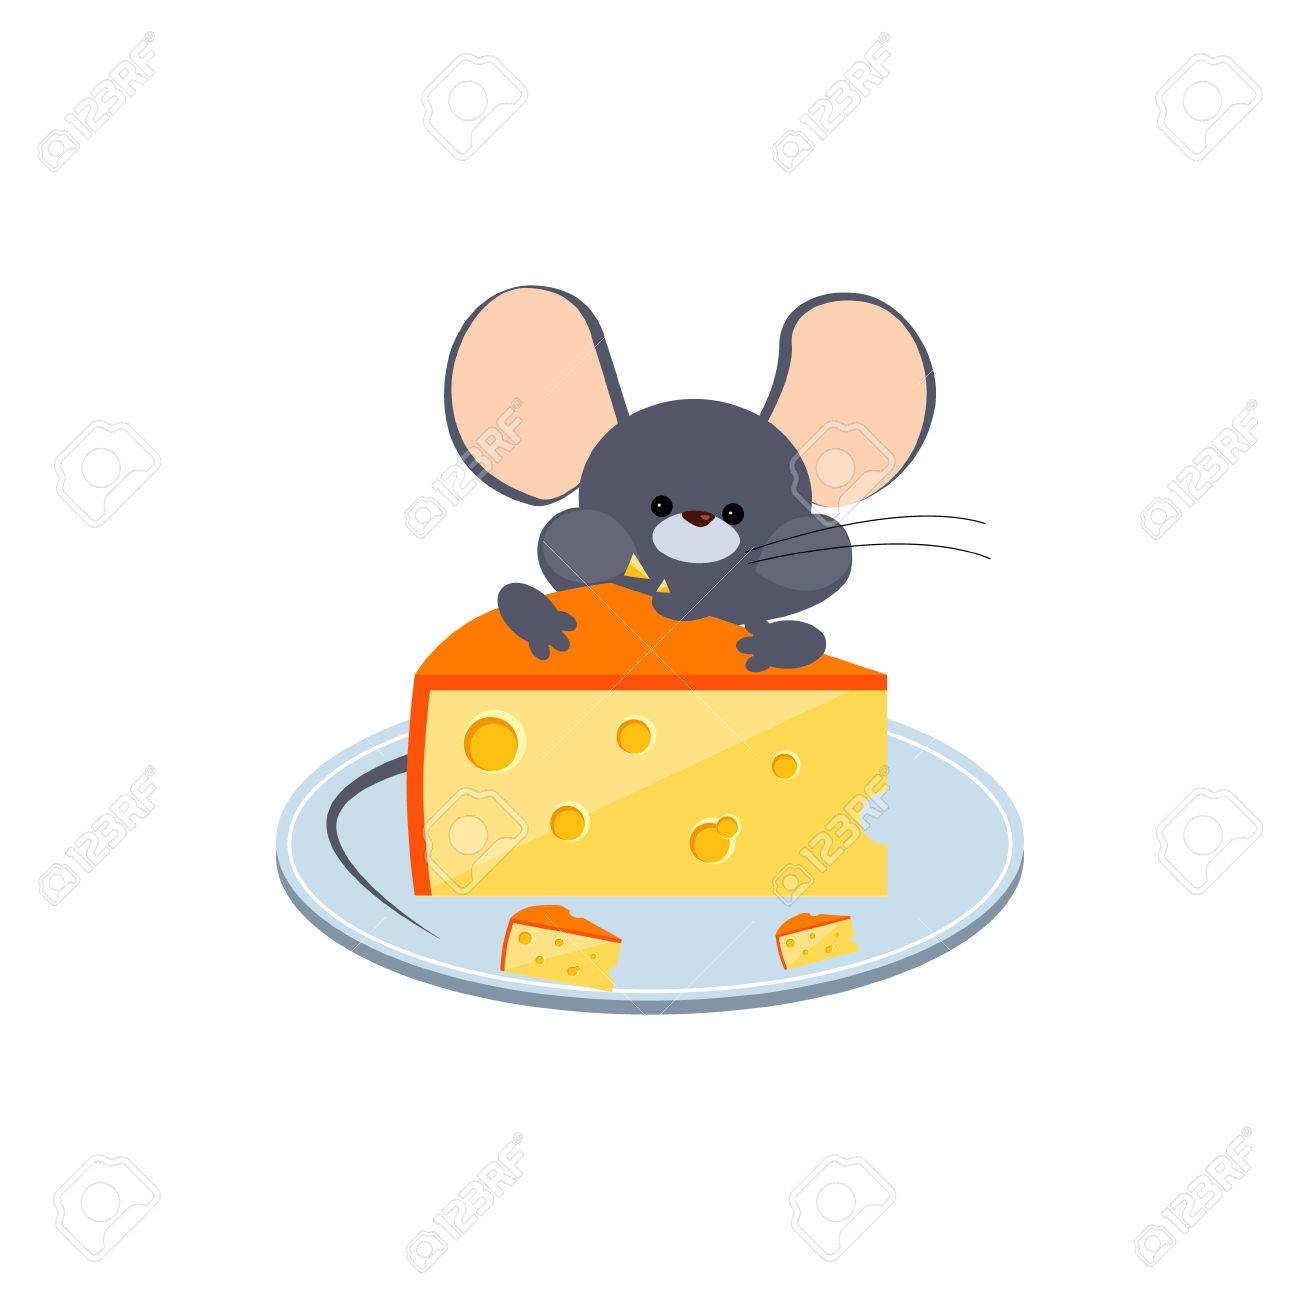 Little Gray Mouse Chewing Cheese on a Plate. Bright Vector Illustration - 47988362